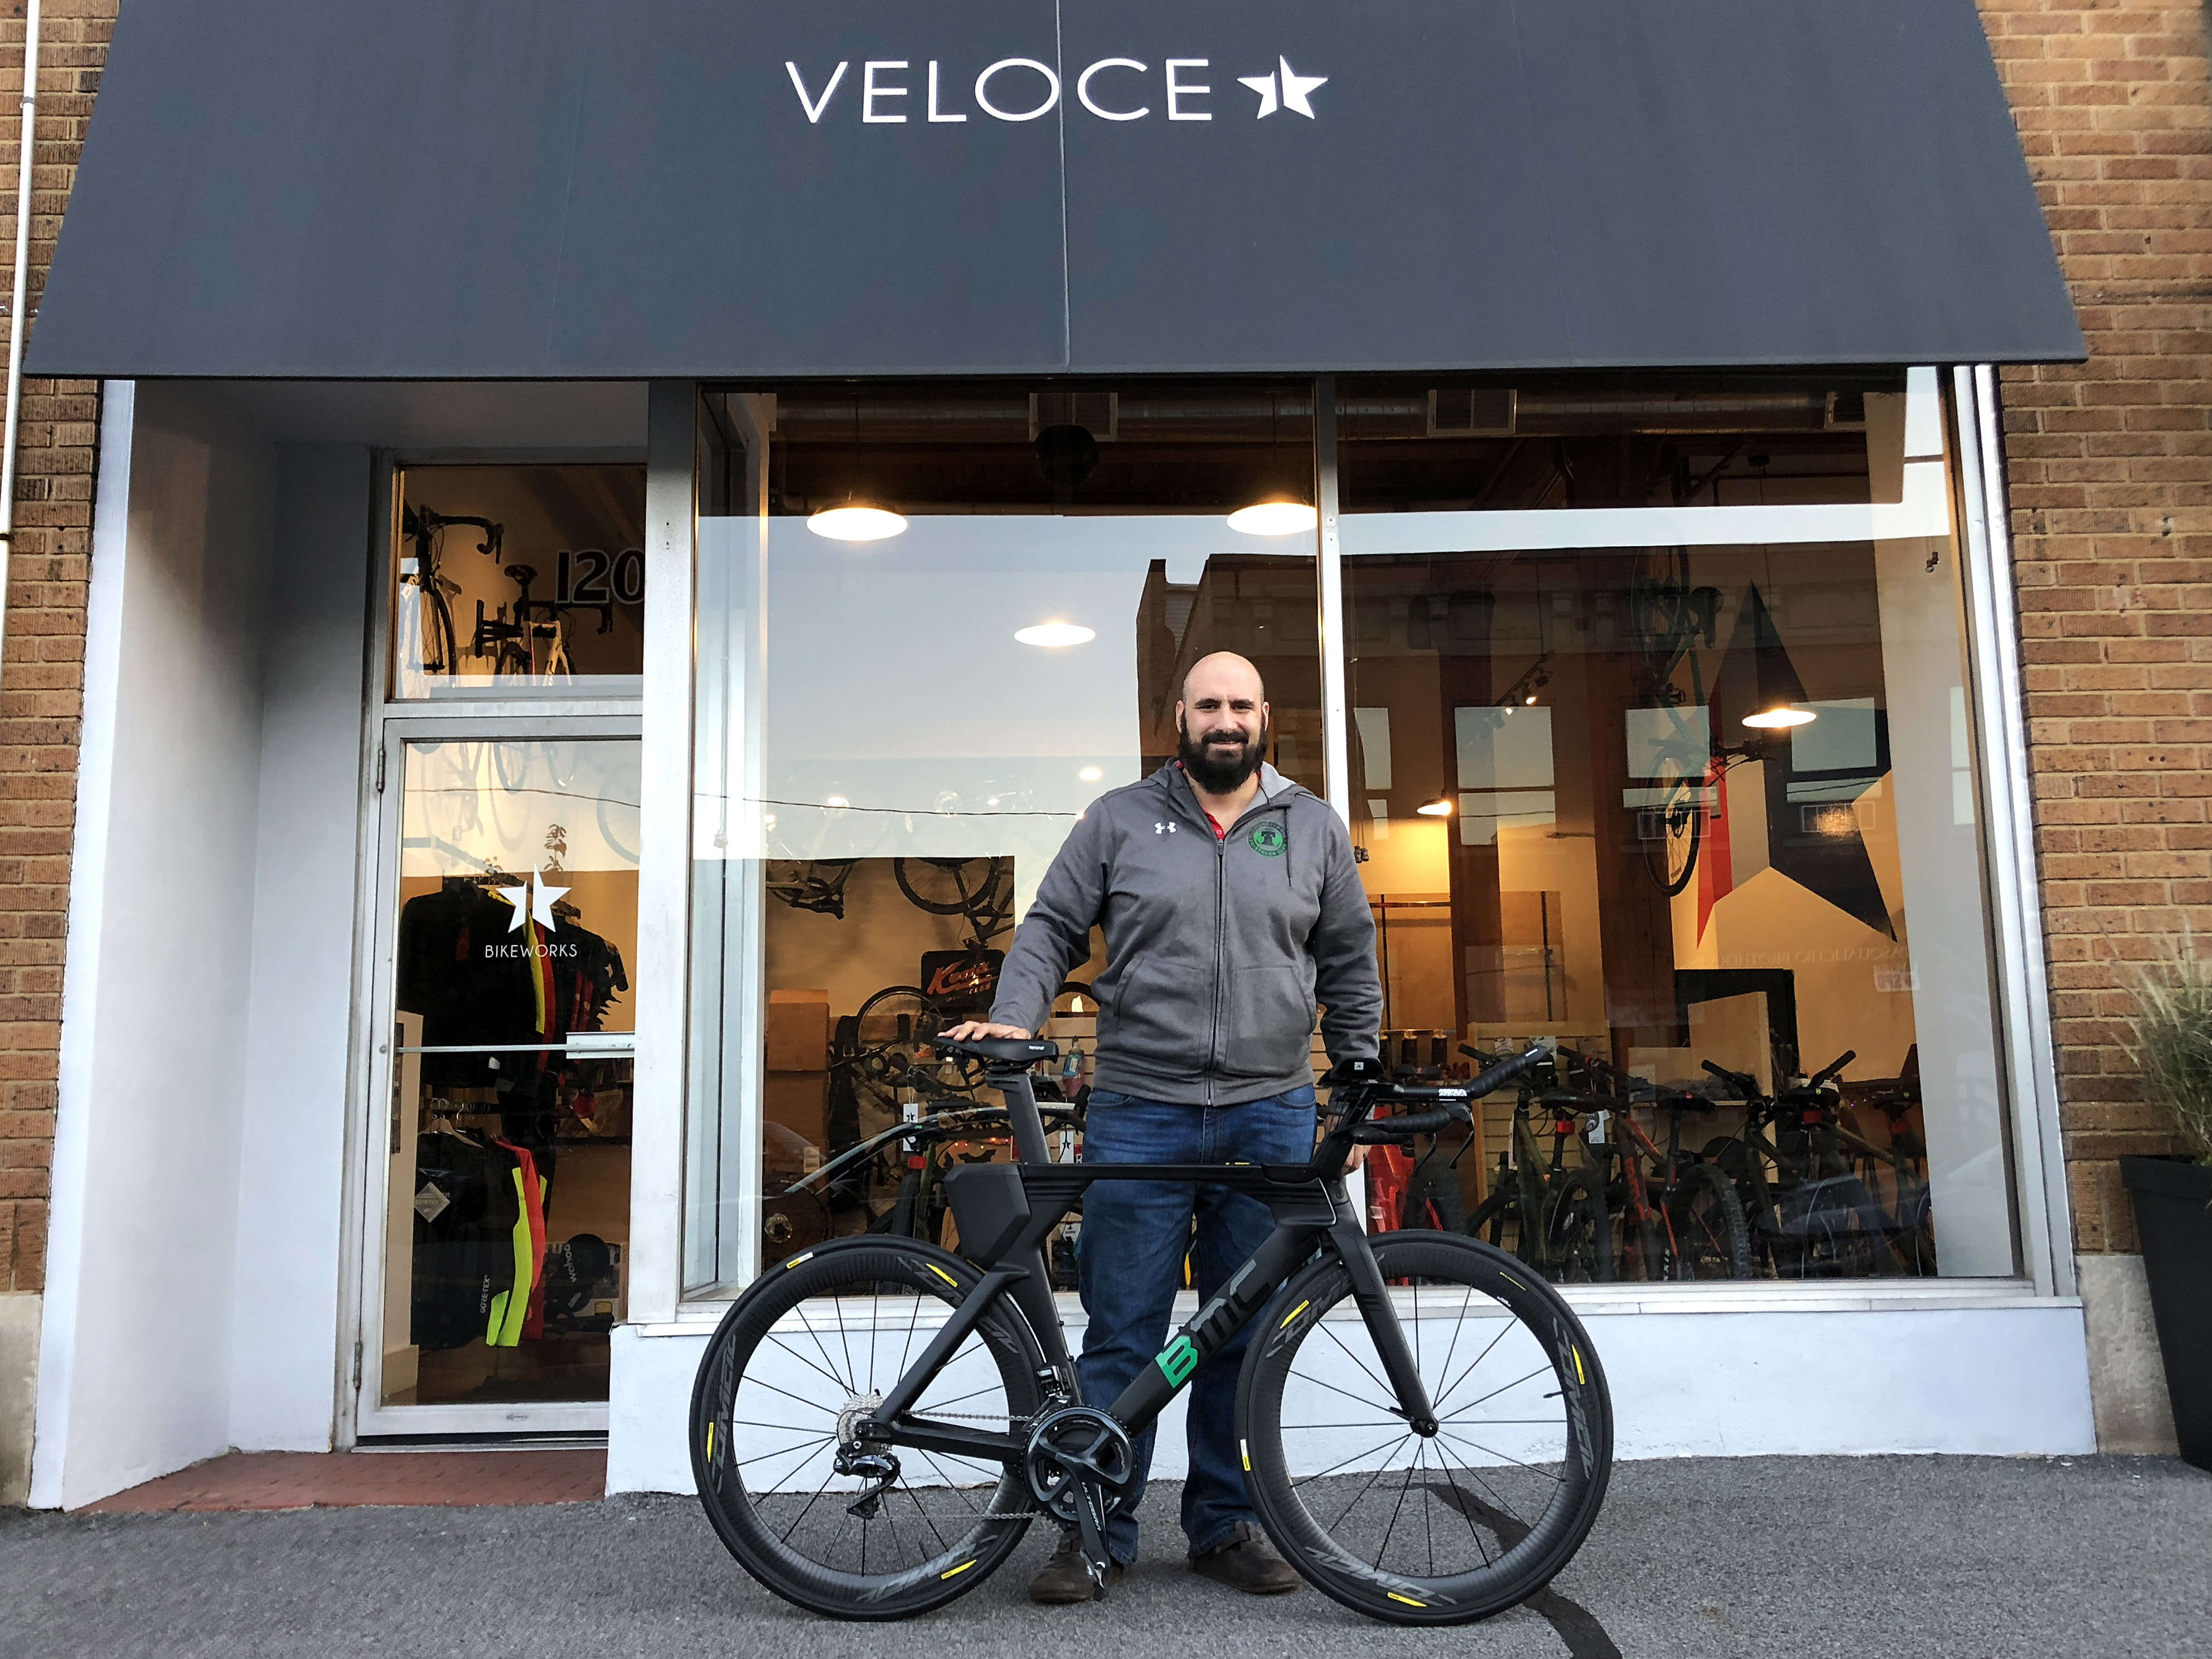 Veloce Scranton Storefront with a new bike